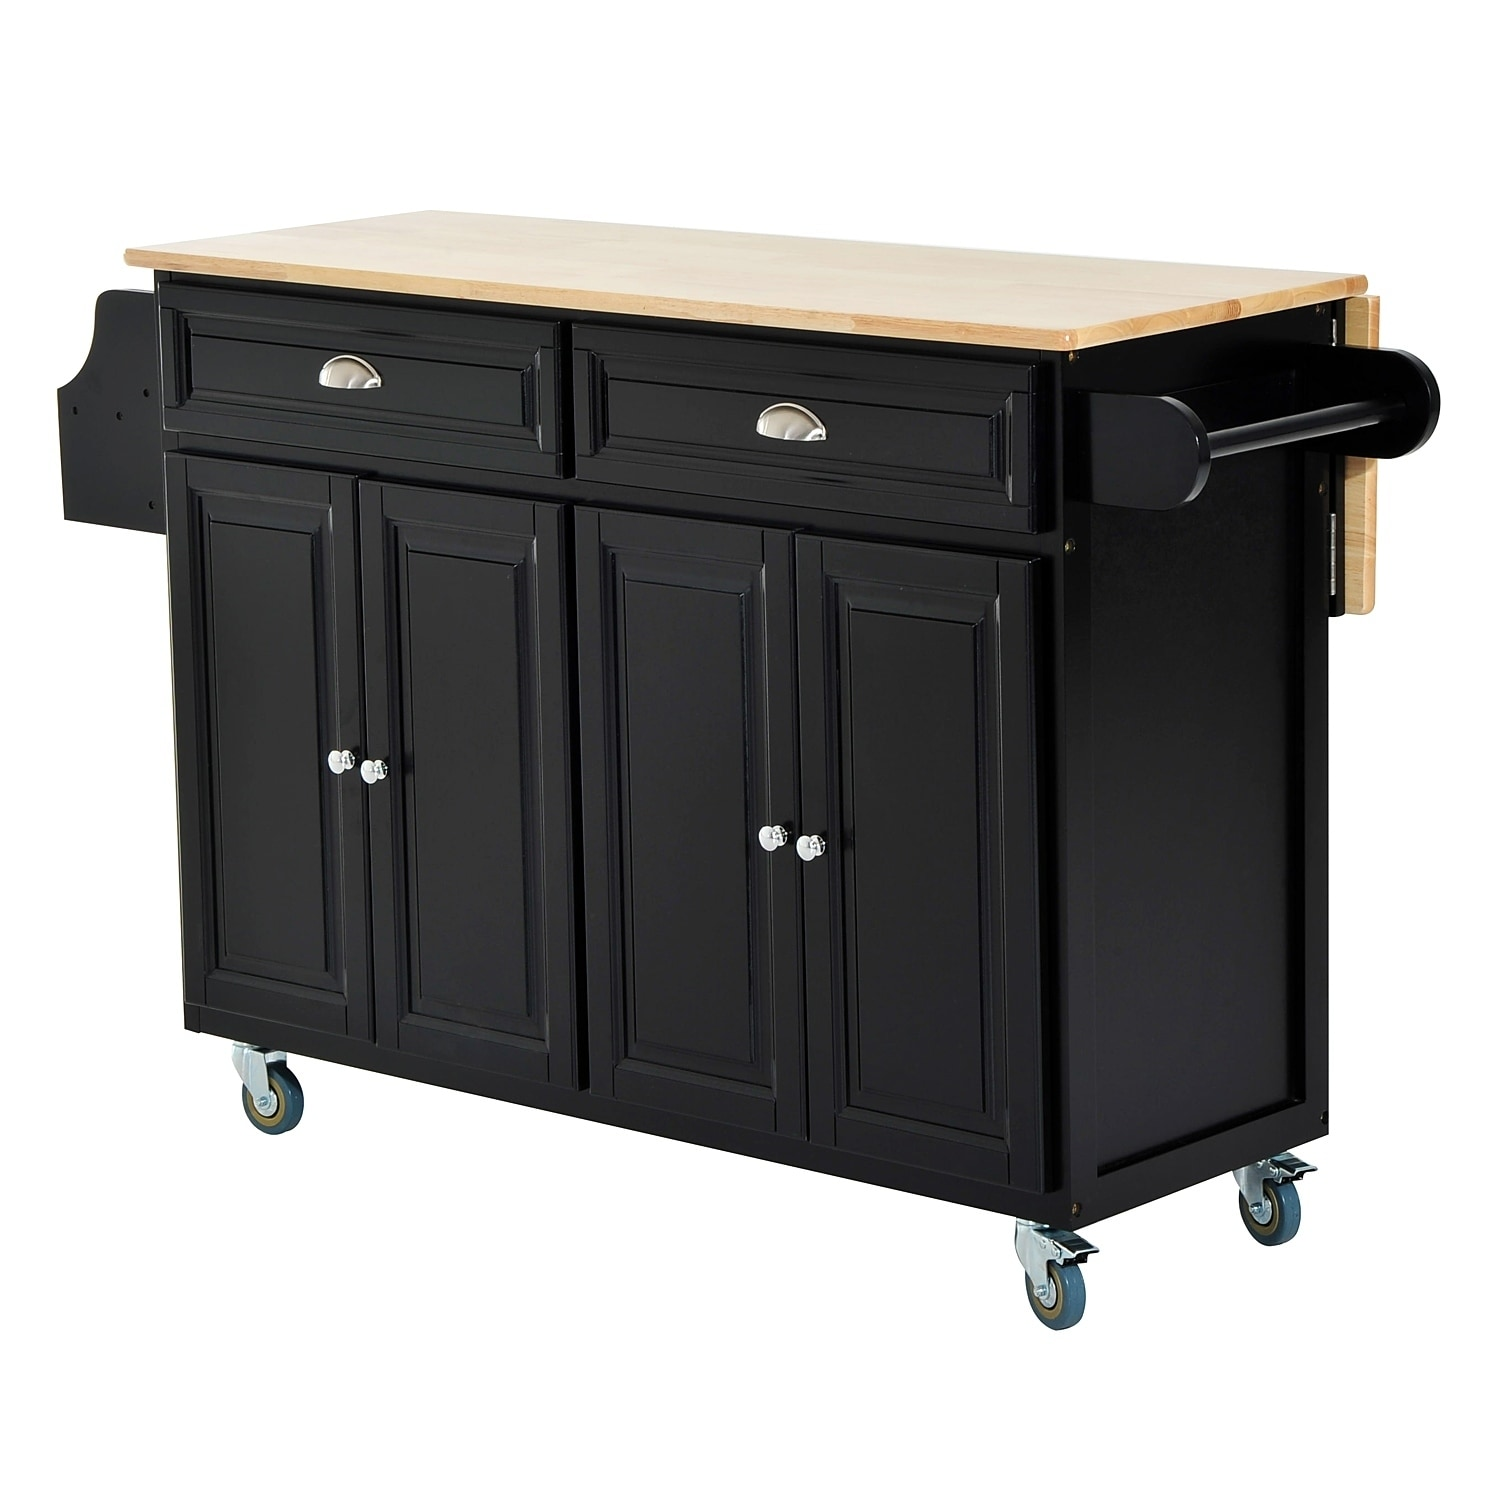 Homcom Kitchen Island Modern Rolling Storage Cart On Wheels With Wood Top Black Free Shipping Today 18088179